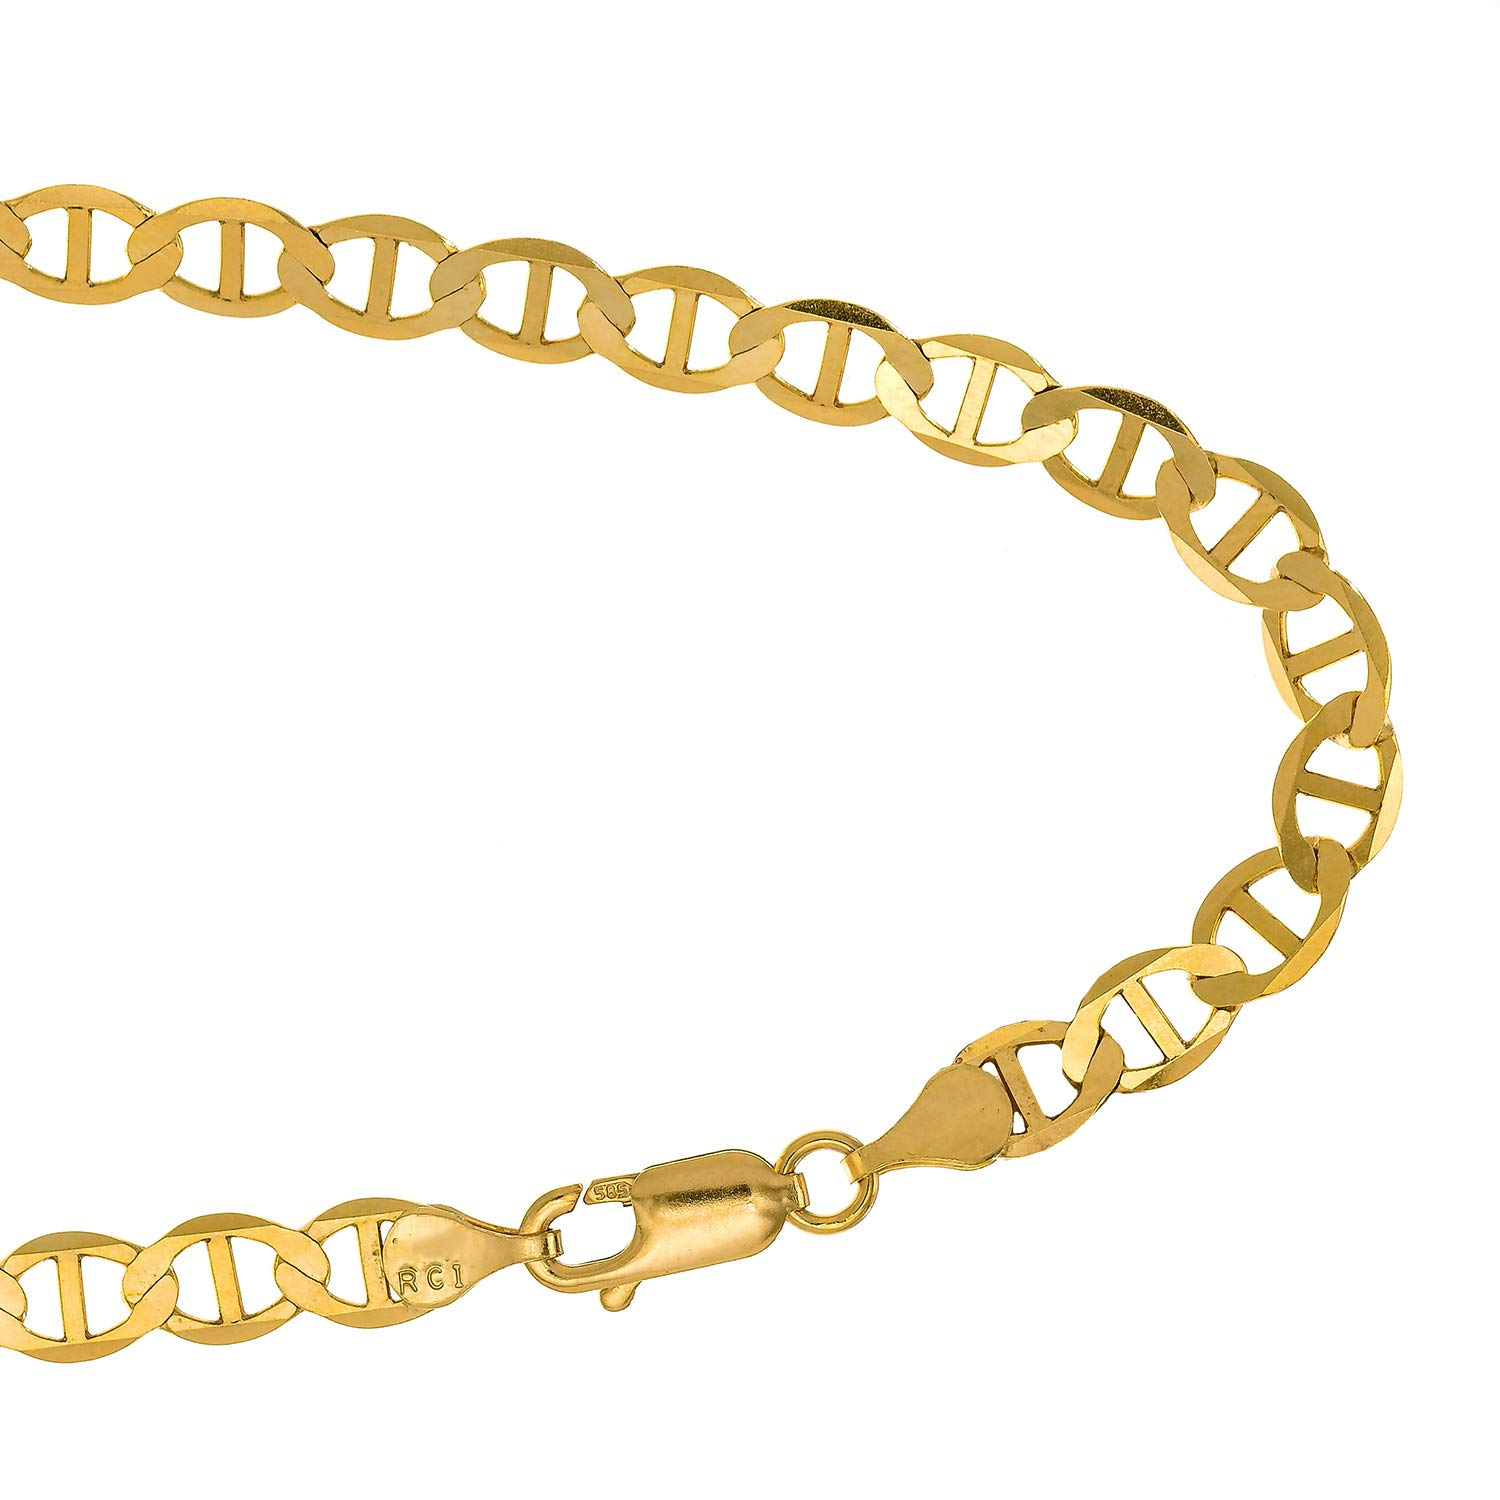 JewelStop 14k Solid Yellow Gold 3.2 mm Mariner Anklet, Lobster Claw Clasp, 2.6 gr - 10'' by JewelStop